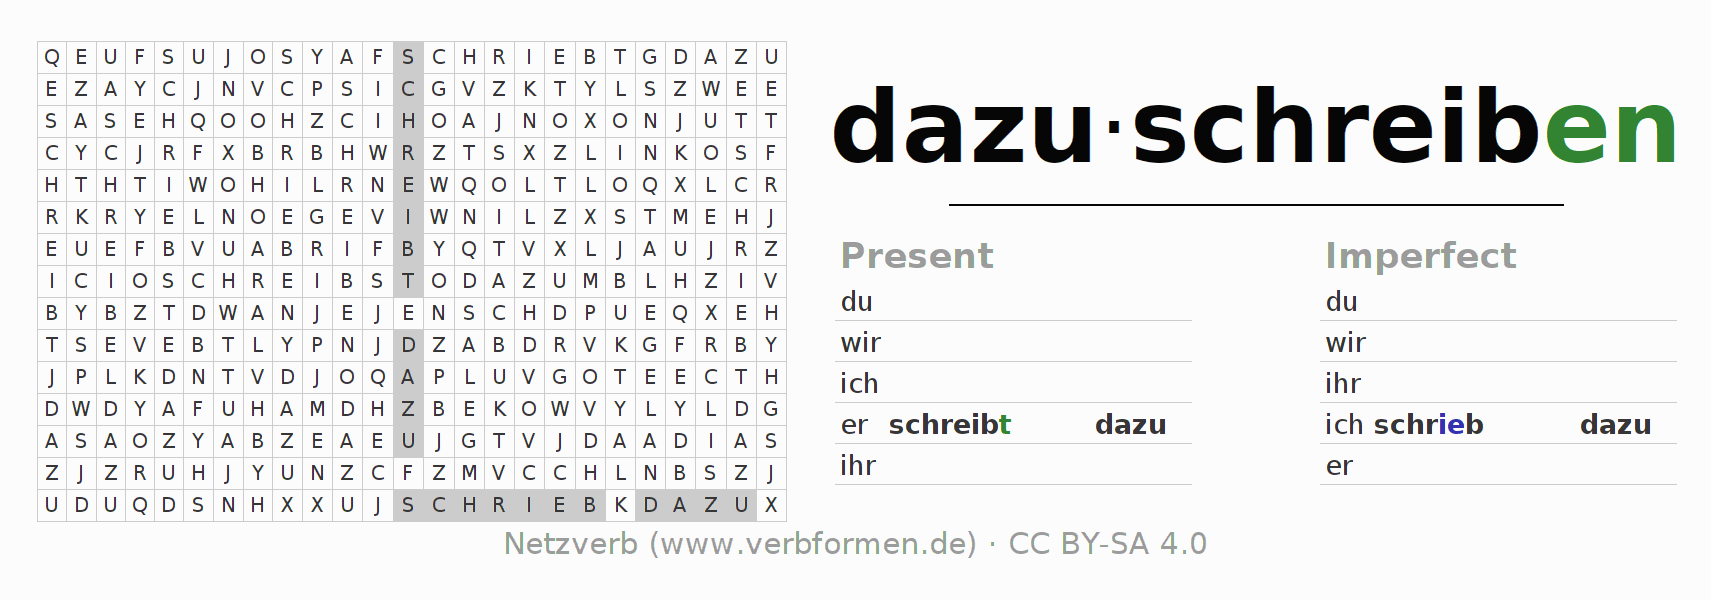 Word search puzzle for the conjugation of the verb dazuschreiben